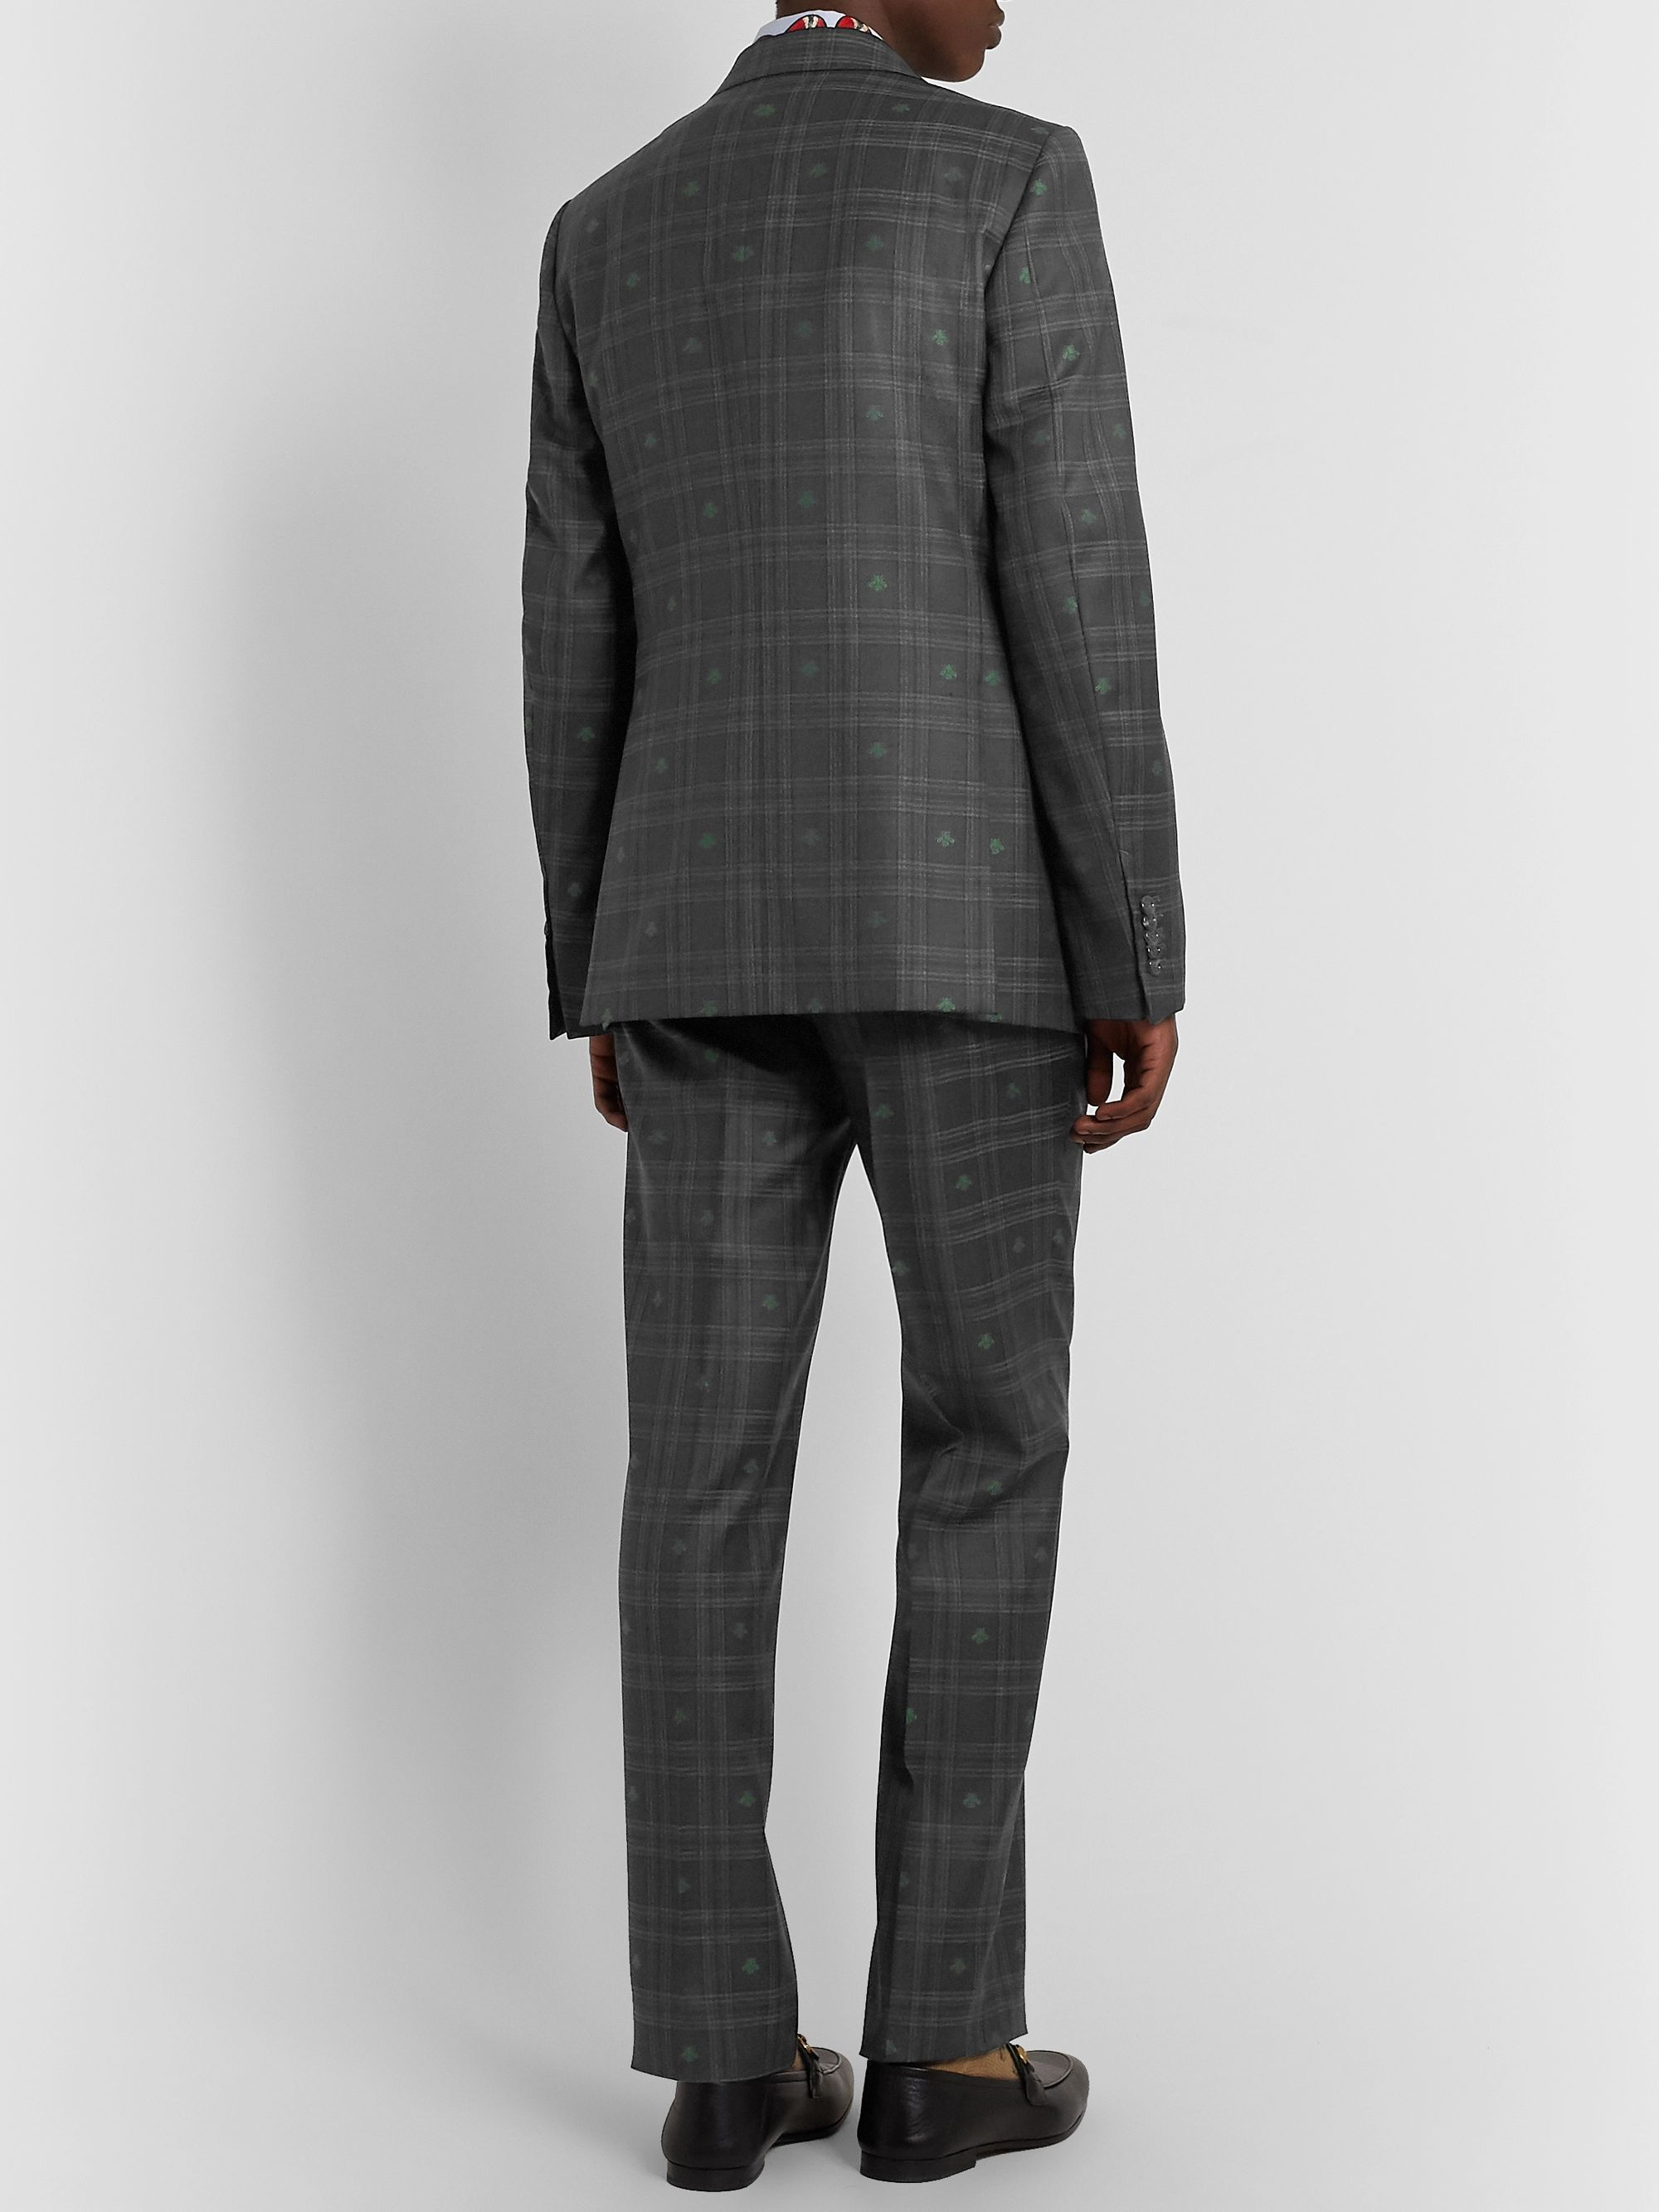 Gucci Slim-Fit Embroidered Prince of Wales Checked Wool Suit